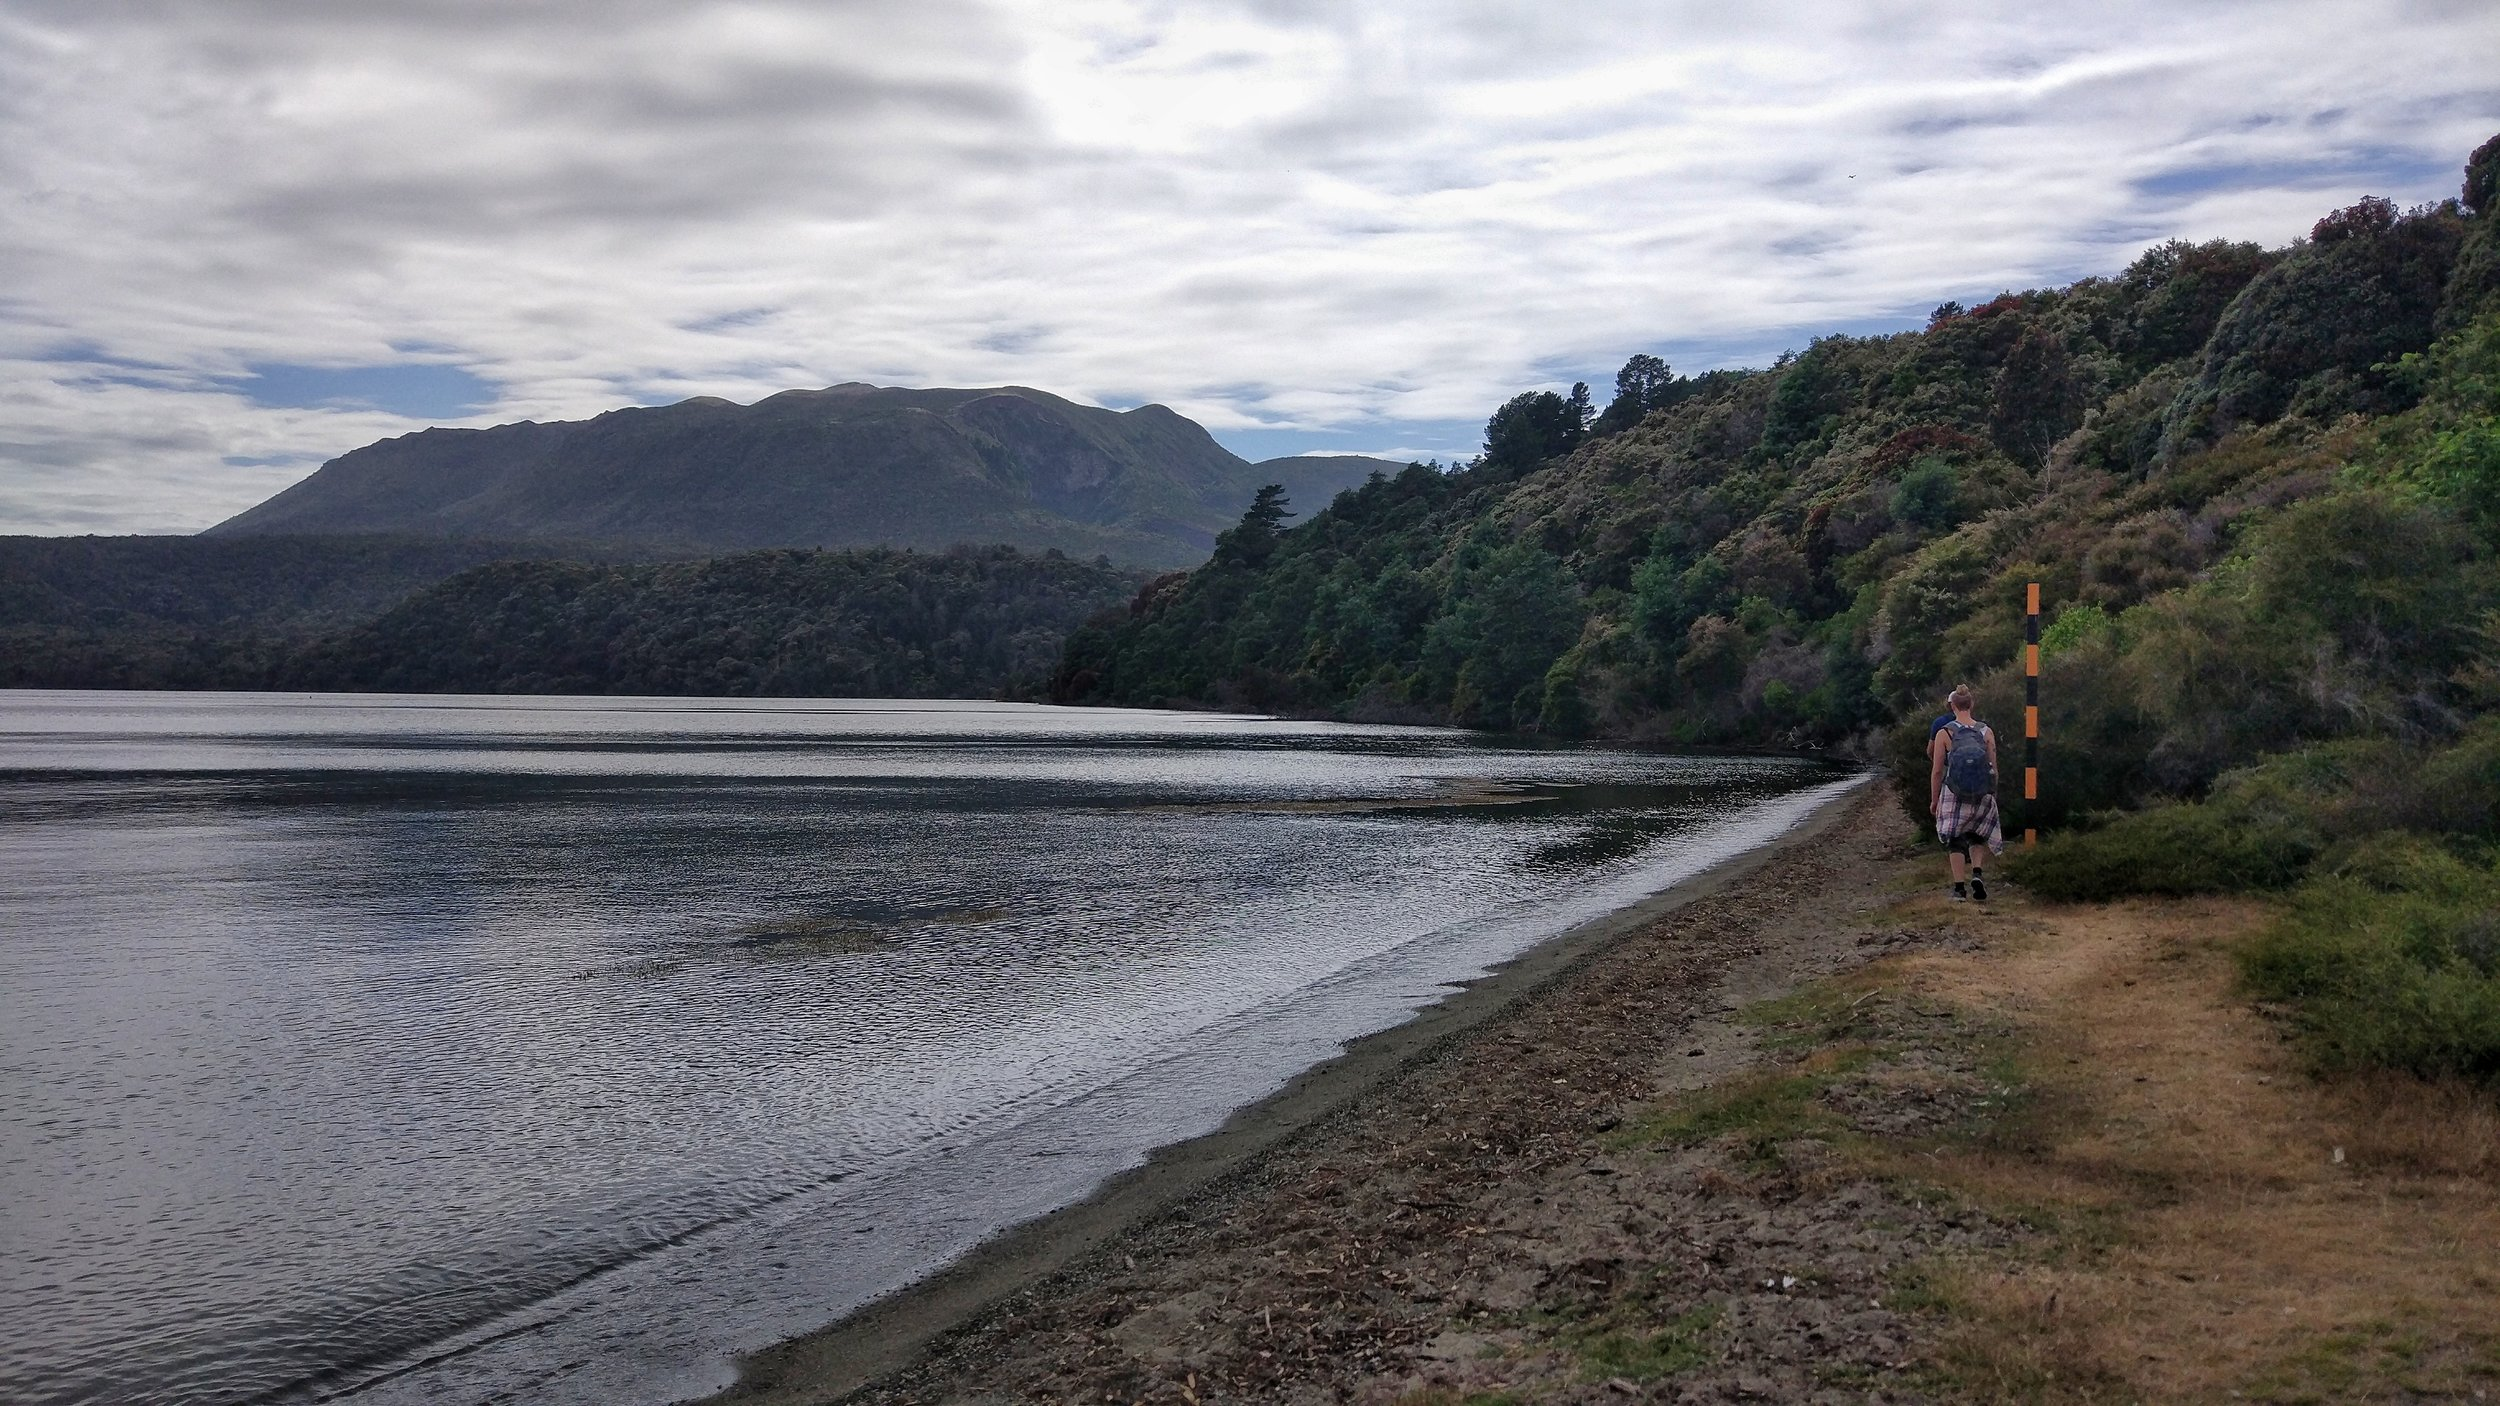 Beginning of the Tarawera Trail, with Mount Tarawera in the background